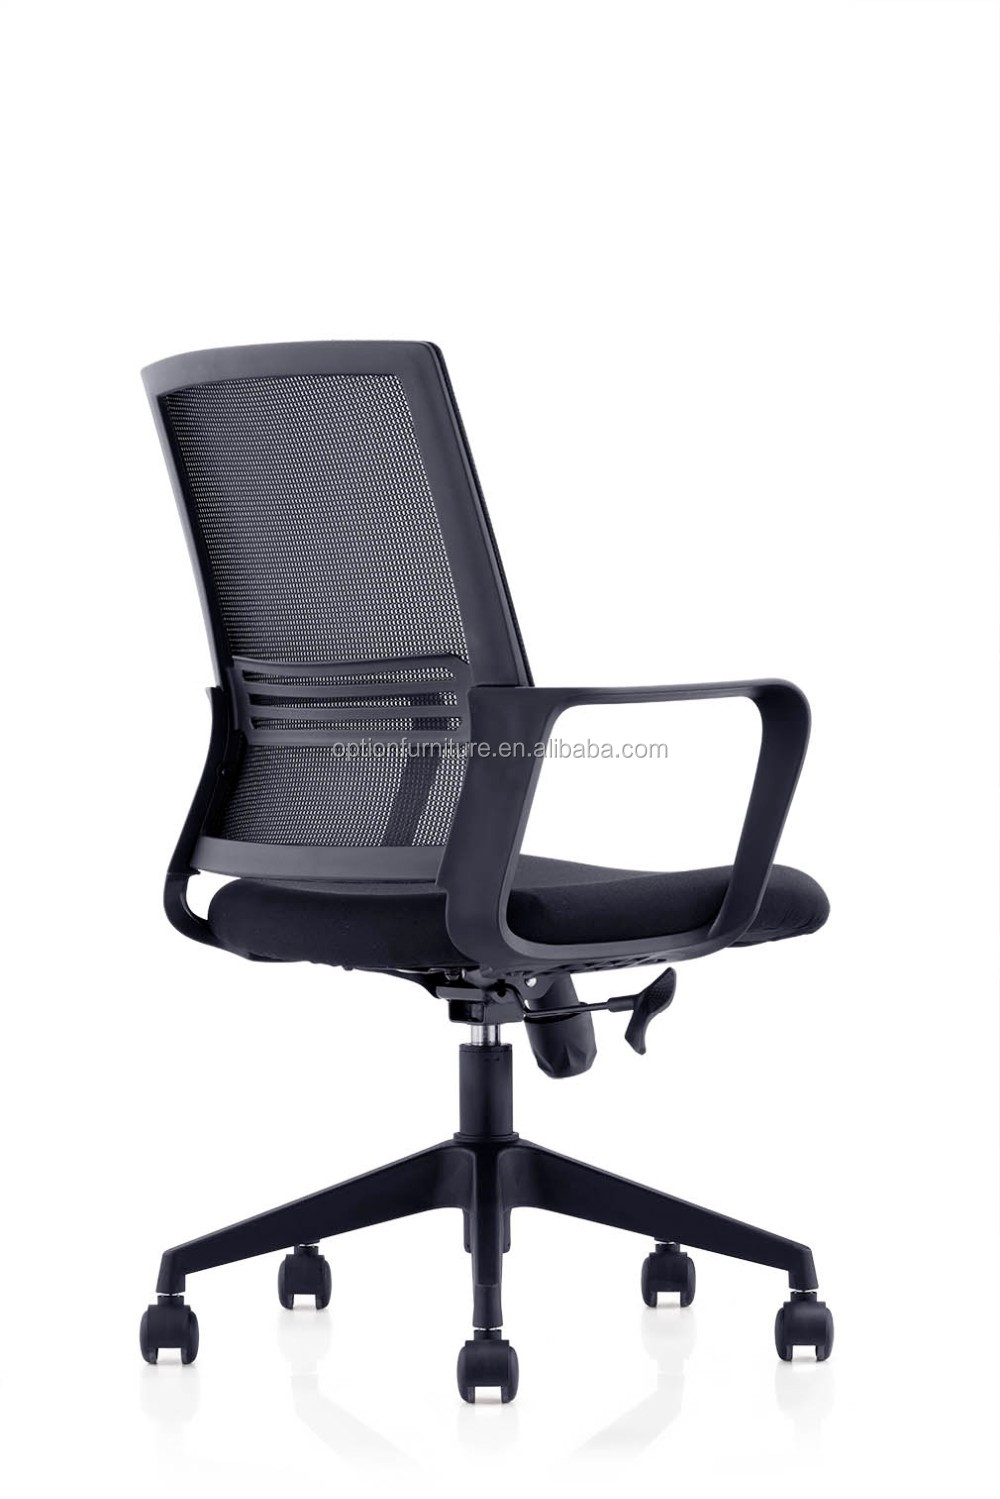 desk chair zero gravity chair china buy chair office desk chair zero